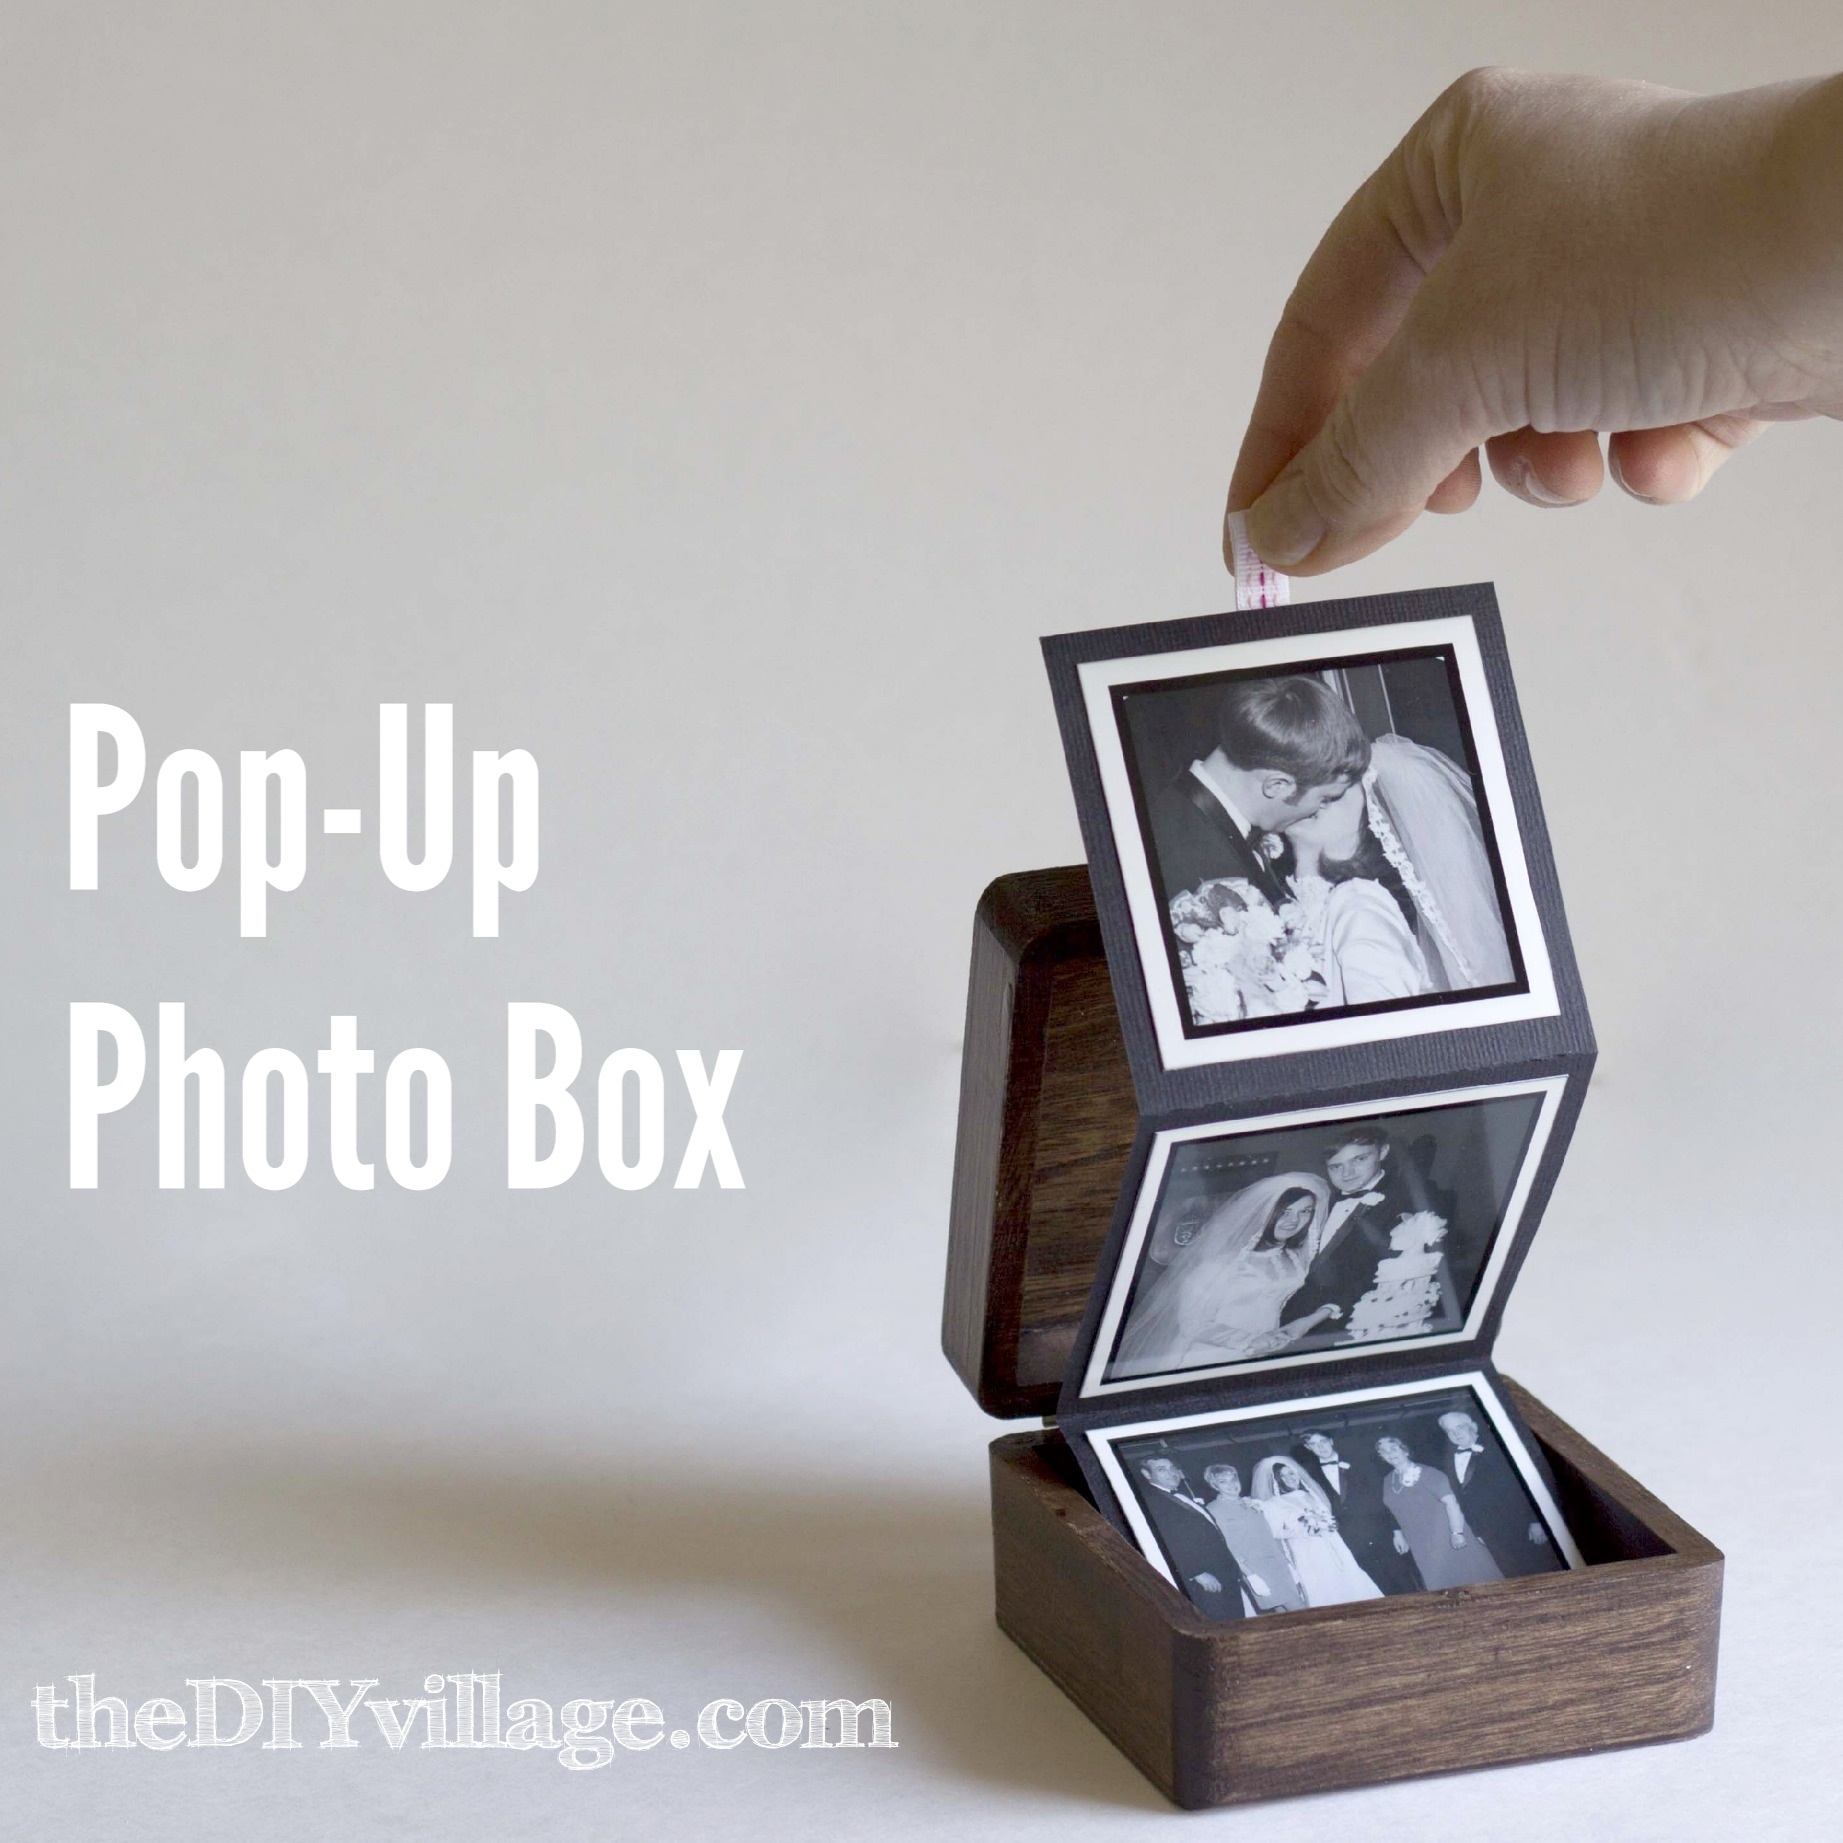 Pop up photo box gift idea the diy village gift idea by thediyvillage solutioingenieria Image collections